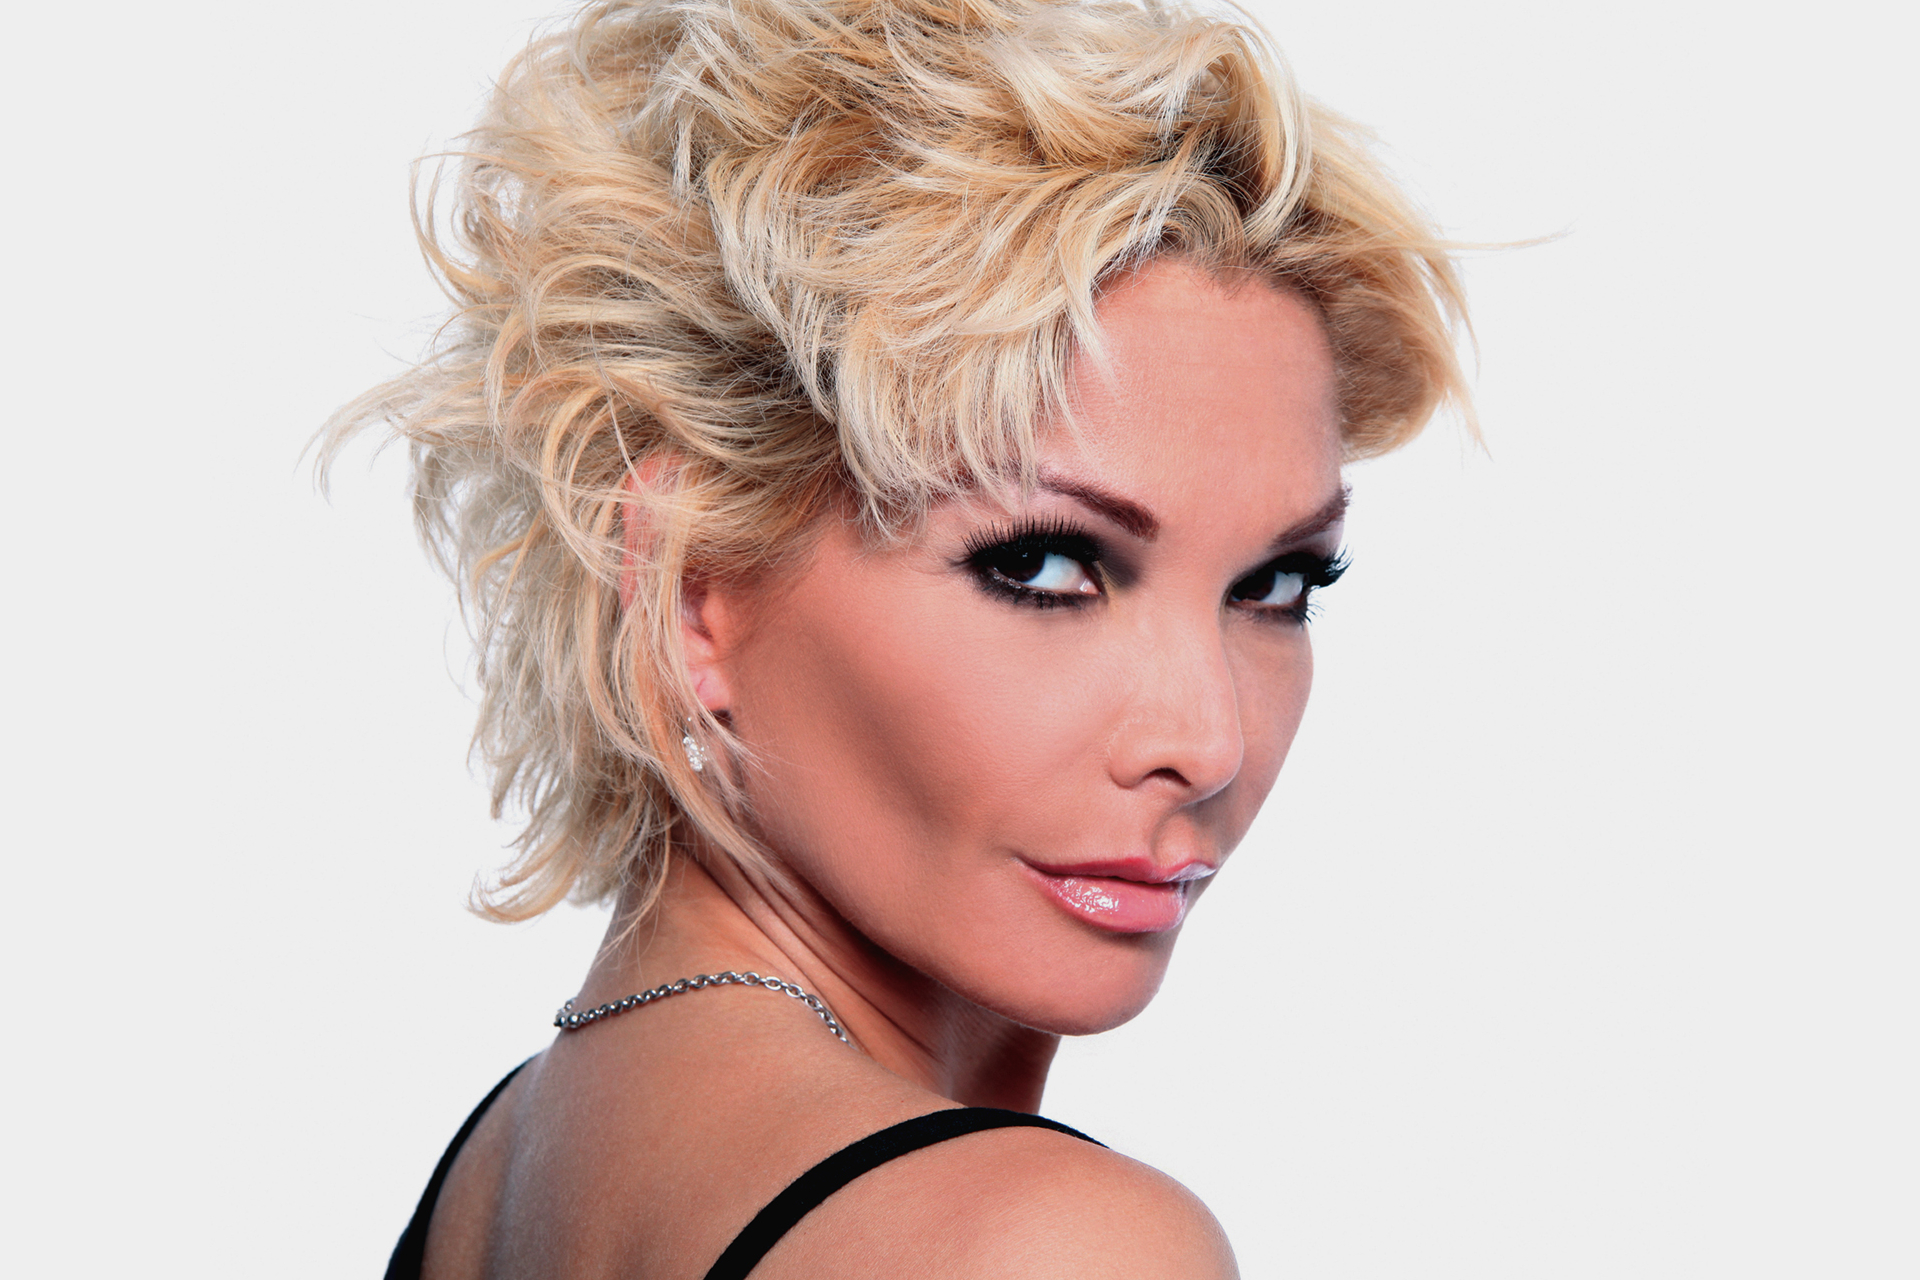 Marisela at McAllen Performing Arts Center